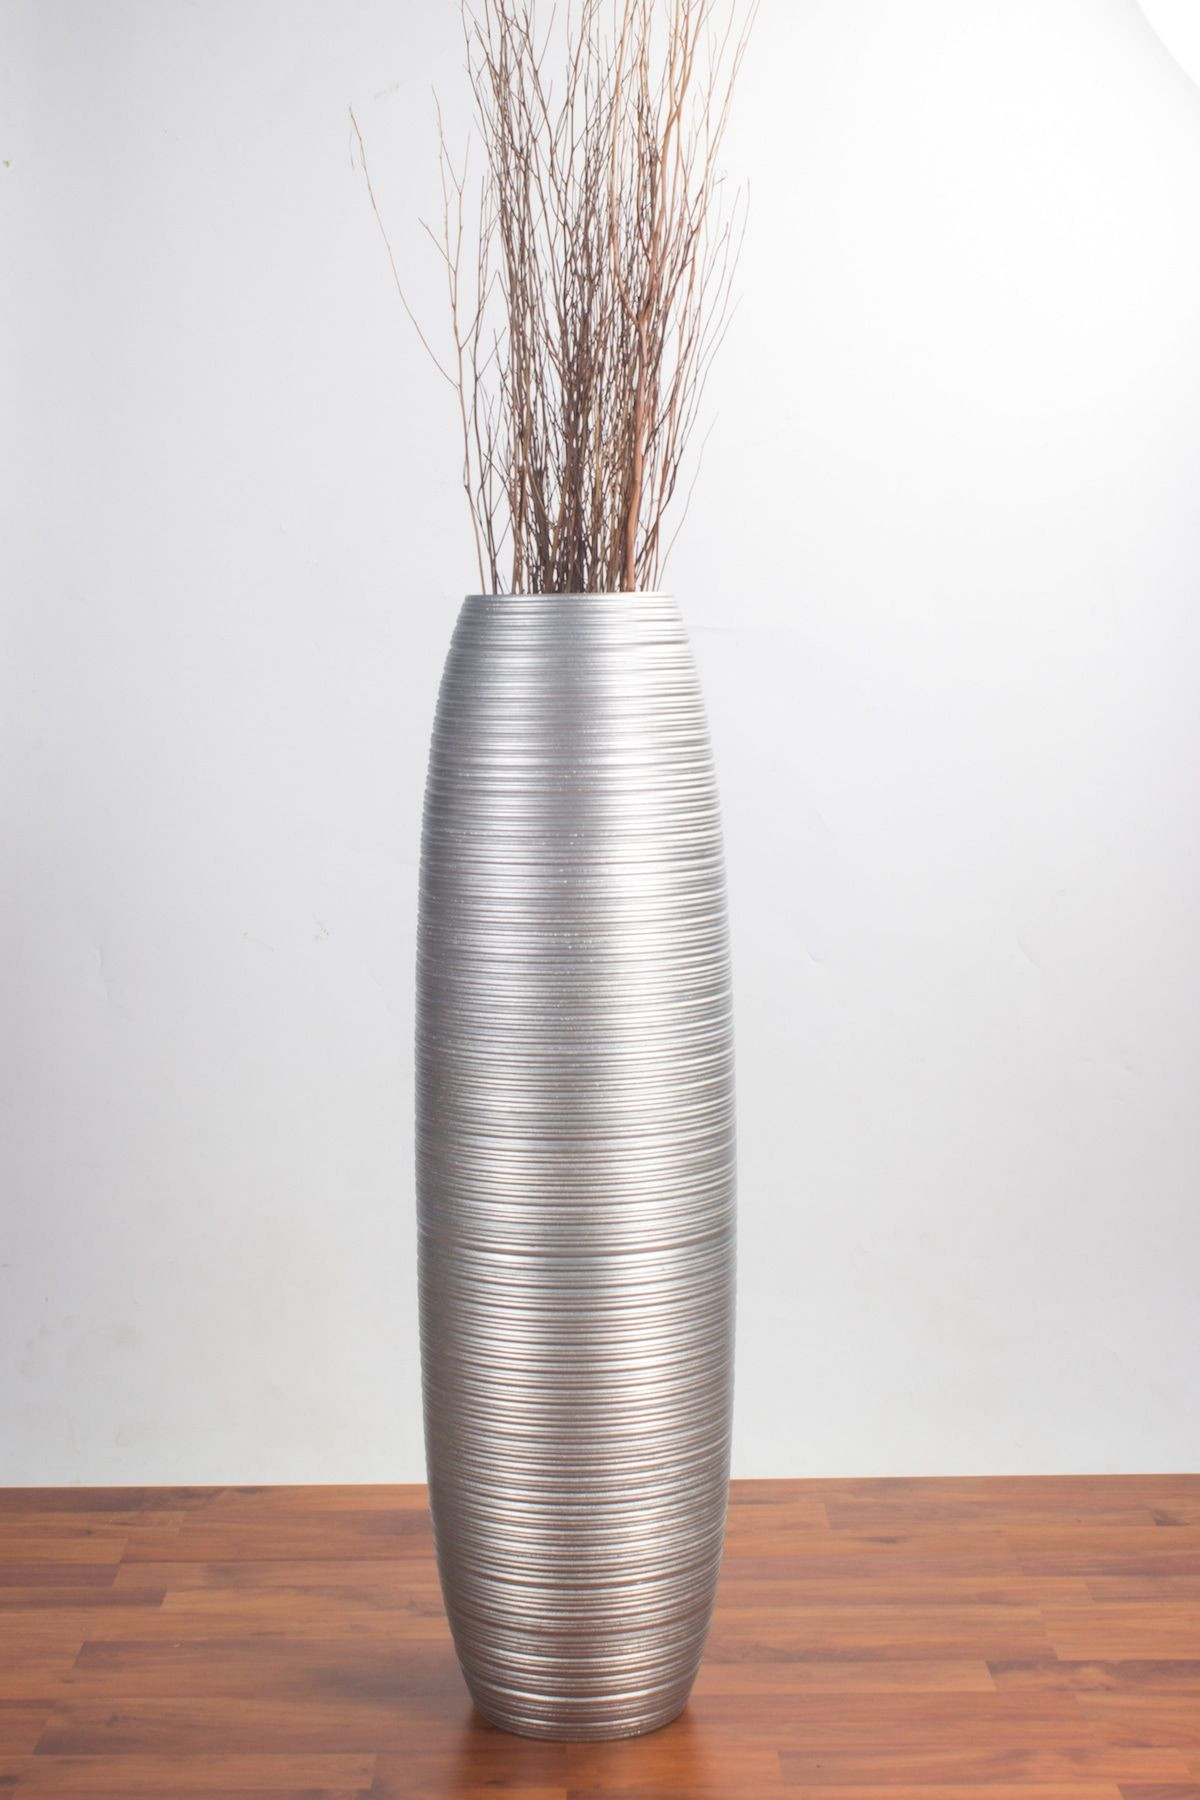 Bamboo Floor Vase Of Decorative Branches for Floor Vases Best Of Tall Floor Vase 36 Pertaining to Decorative Branches for Floor Vases Best Of Tall Floor Vase 36 Inches Wood Silver Home Pinterest